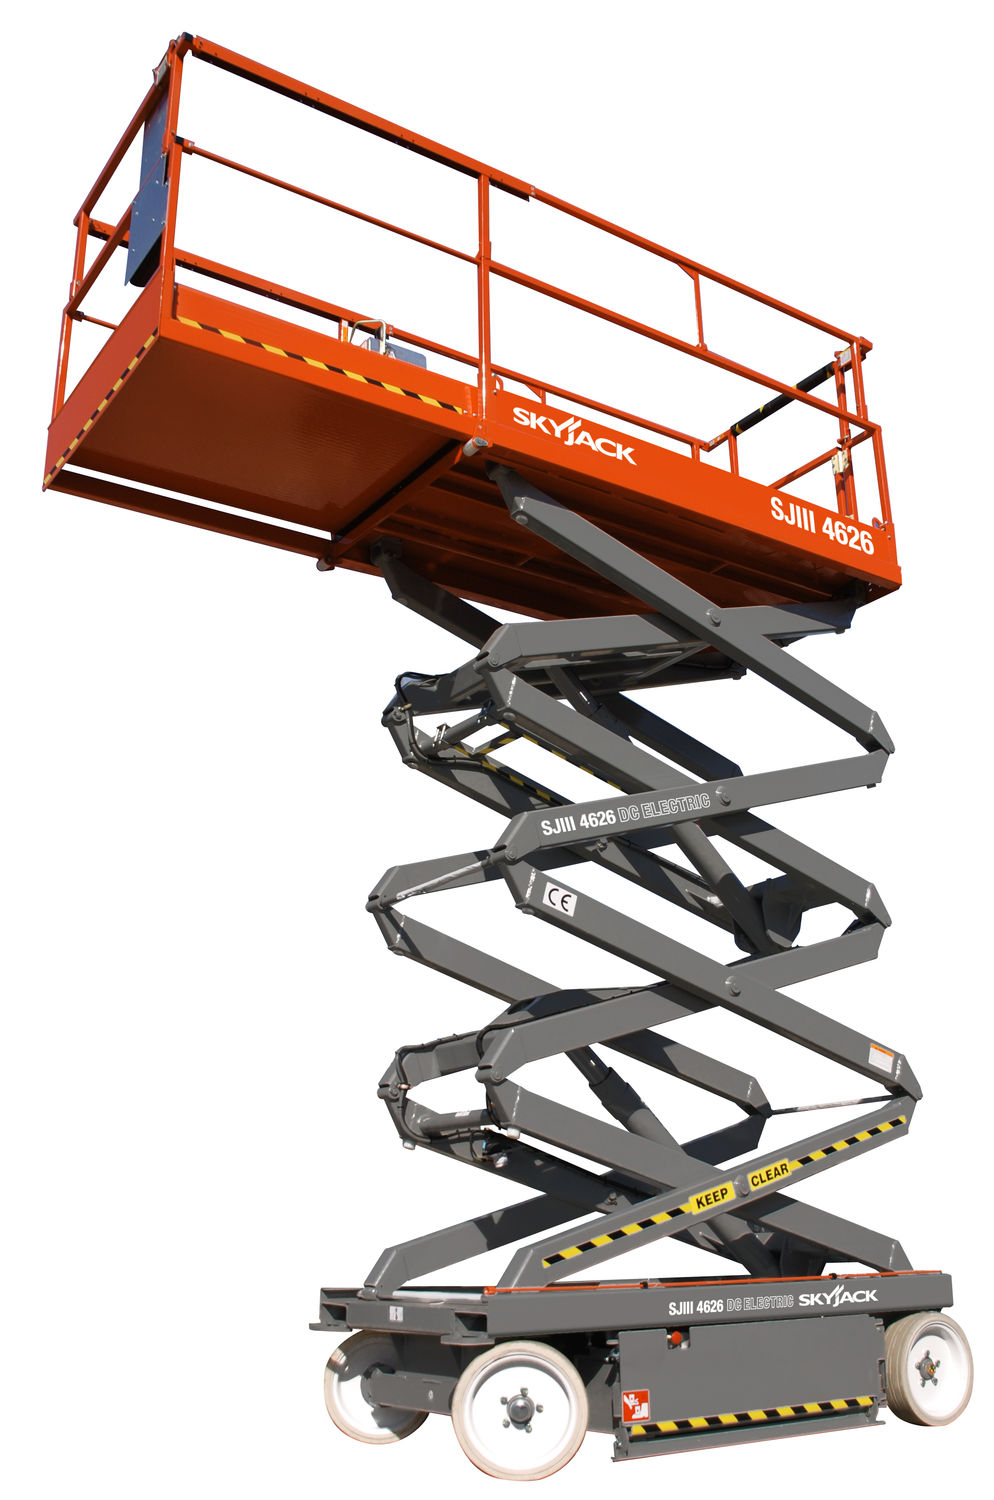 Skyjack Electric Scissor Lift Butterfield Forklift Ltd